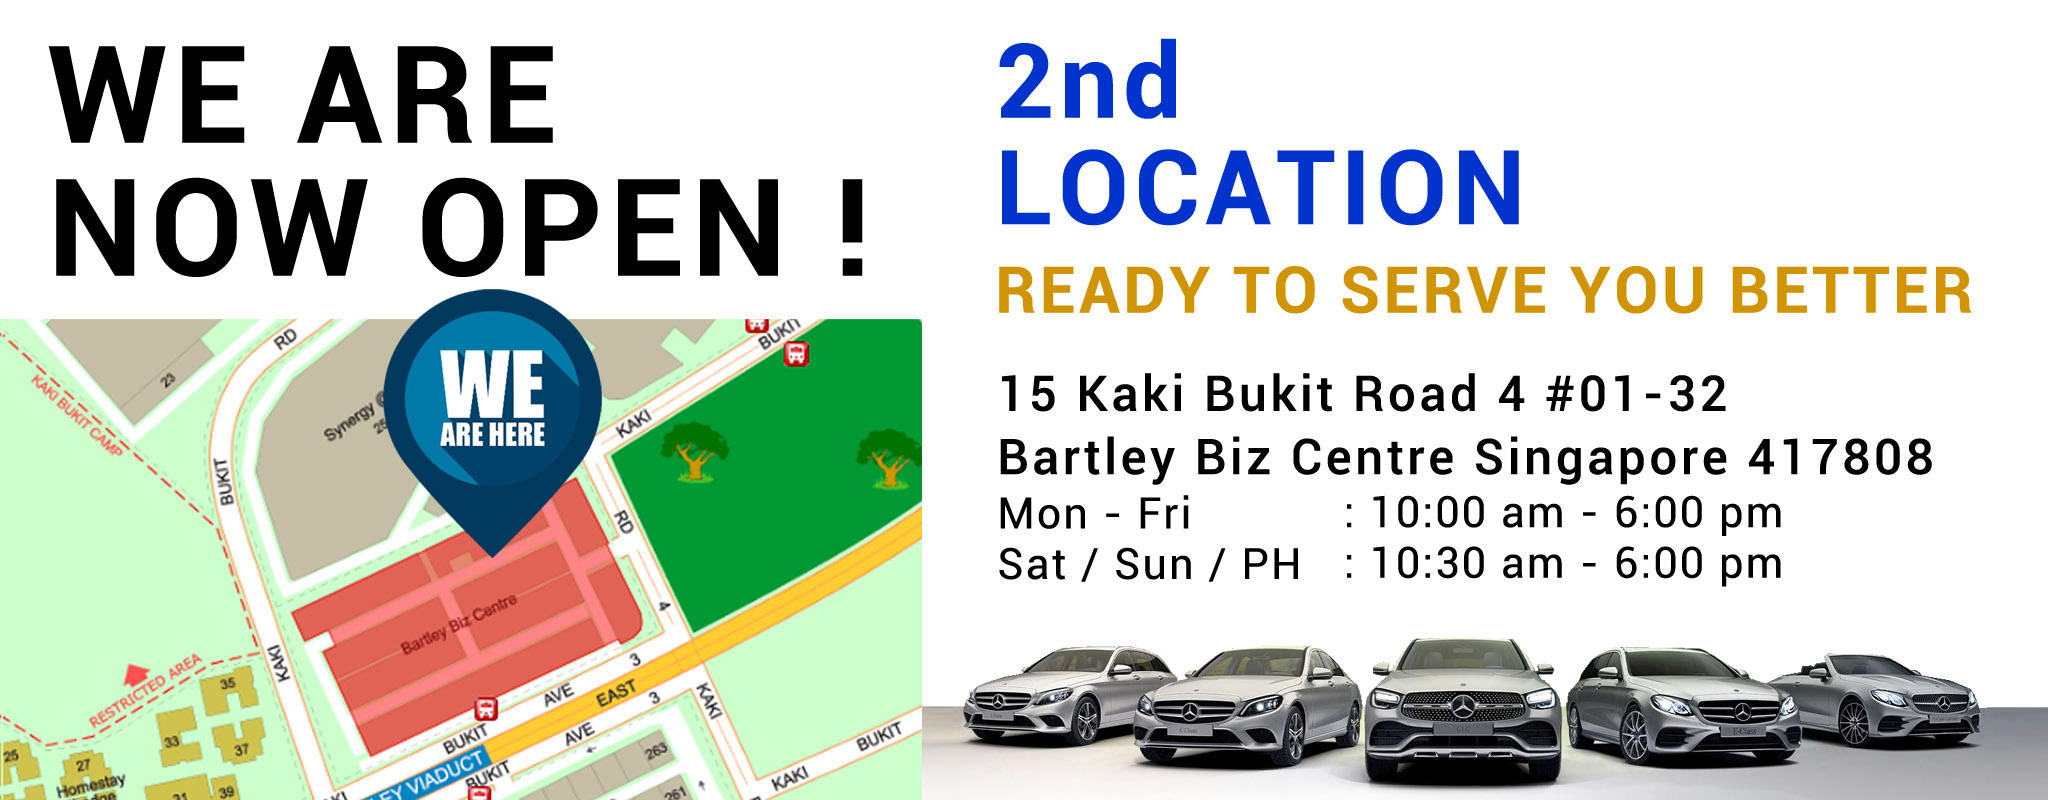 M9 Kaki Bukit Showroom Operation Hours